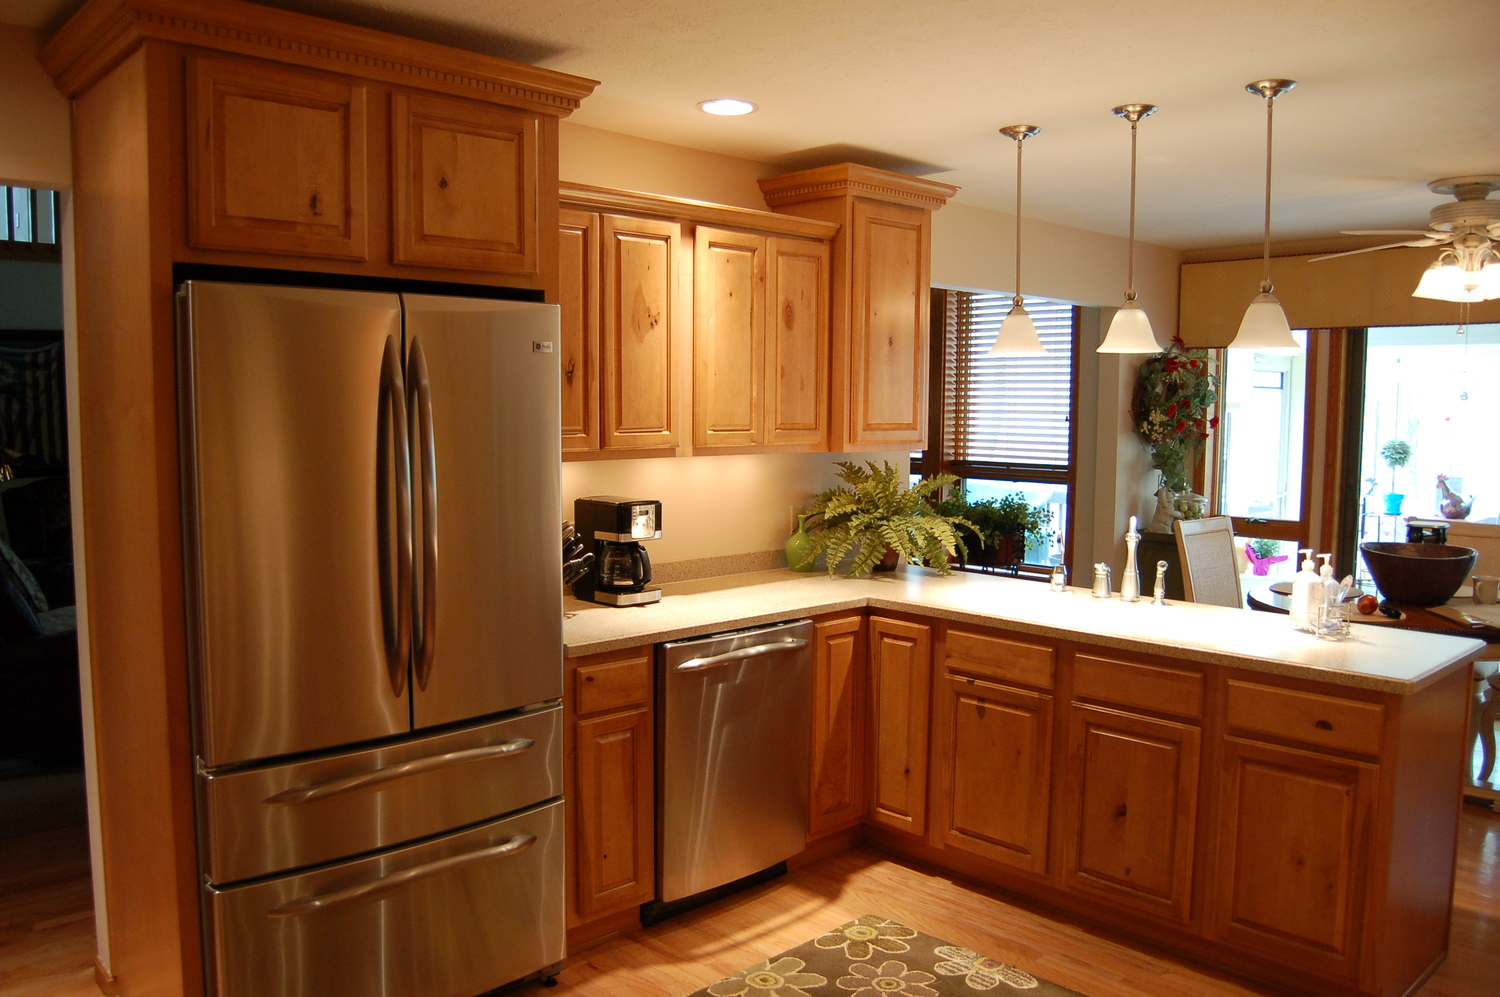 Nice Kitchens Tumblr manuel bran contractor - home remodeling and renovation